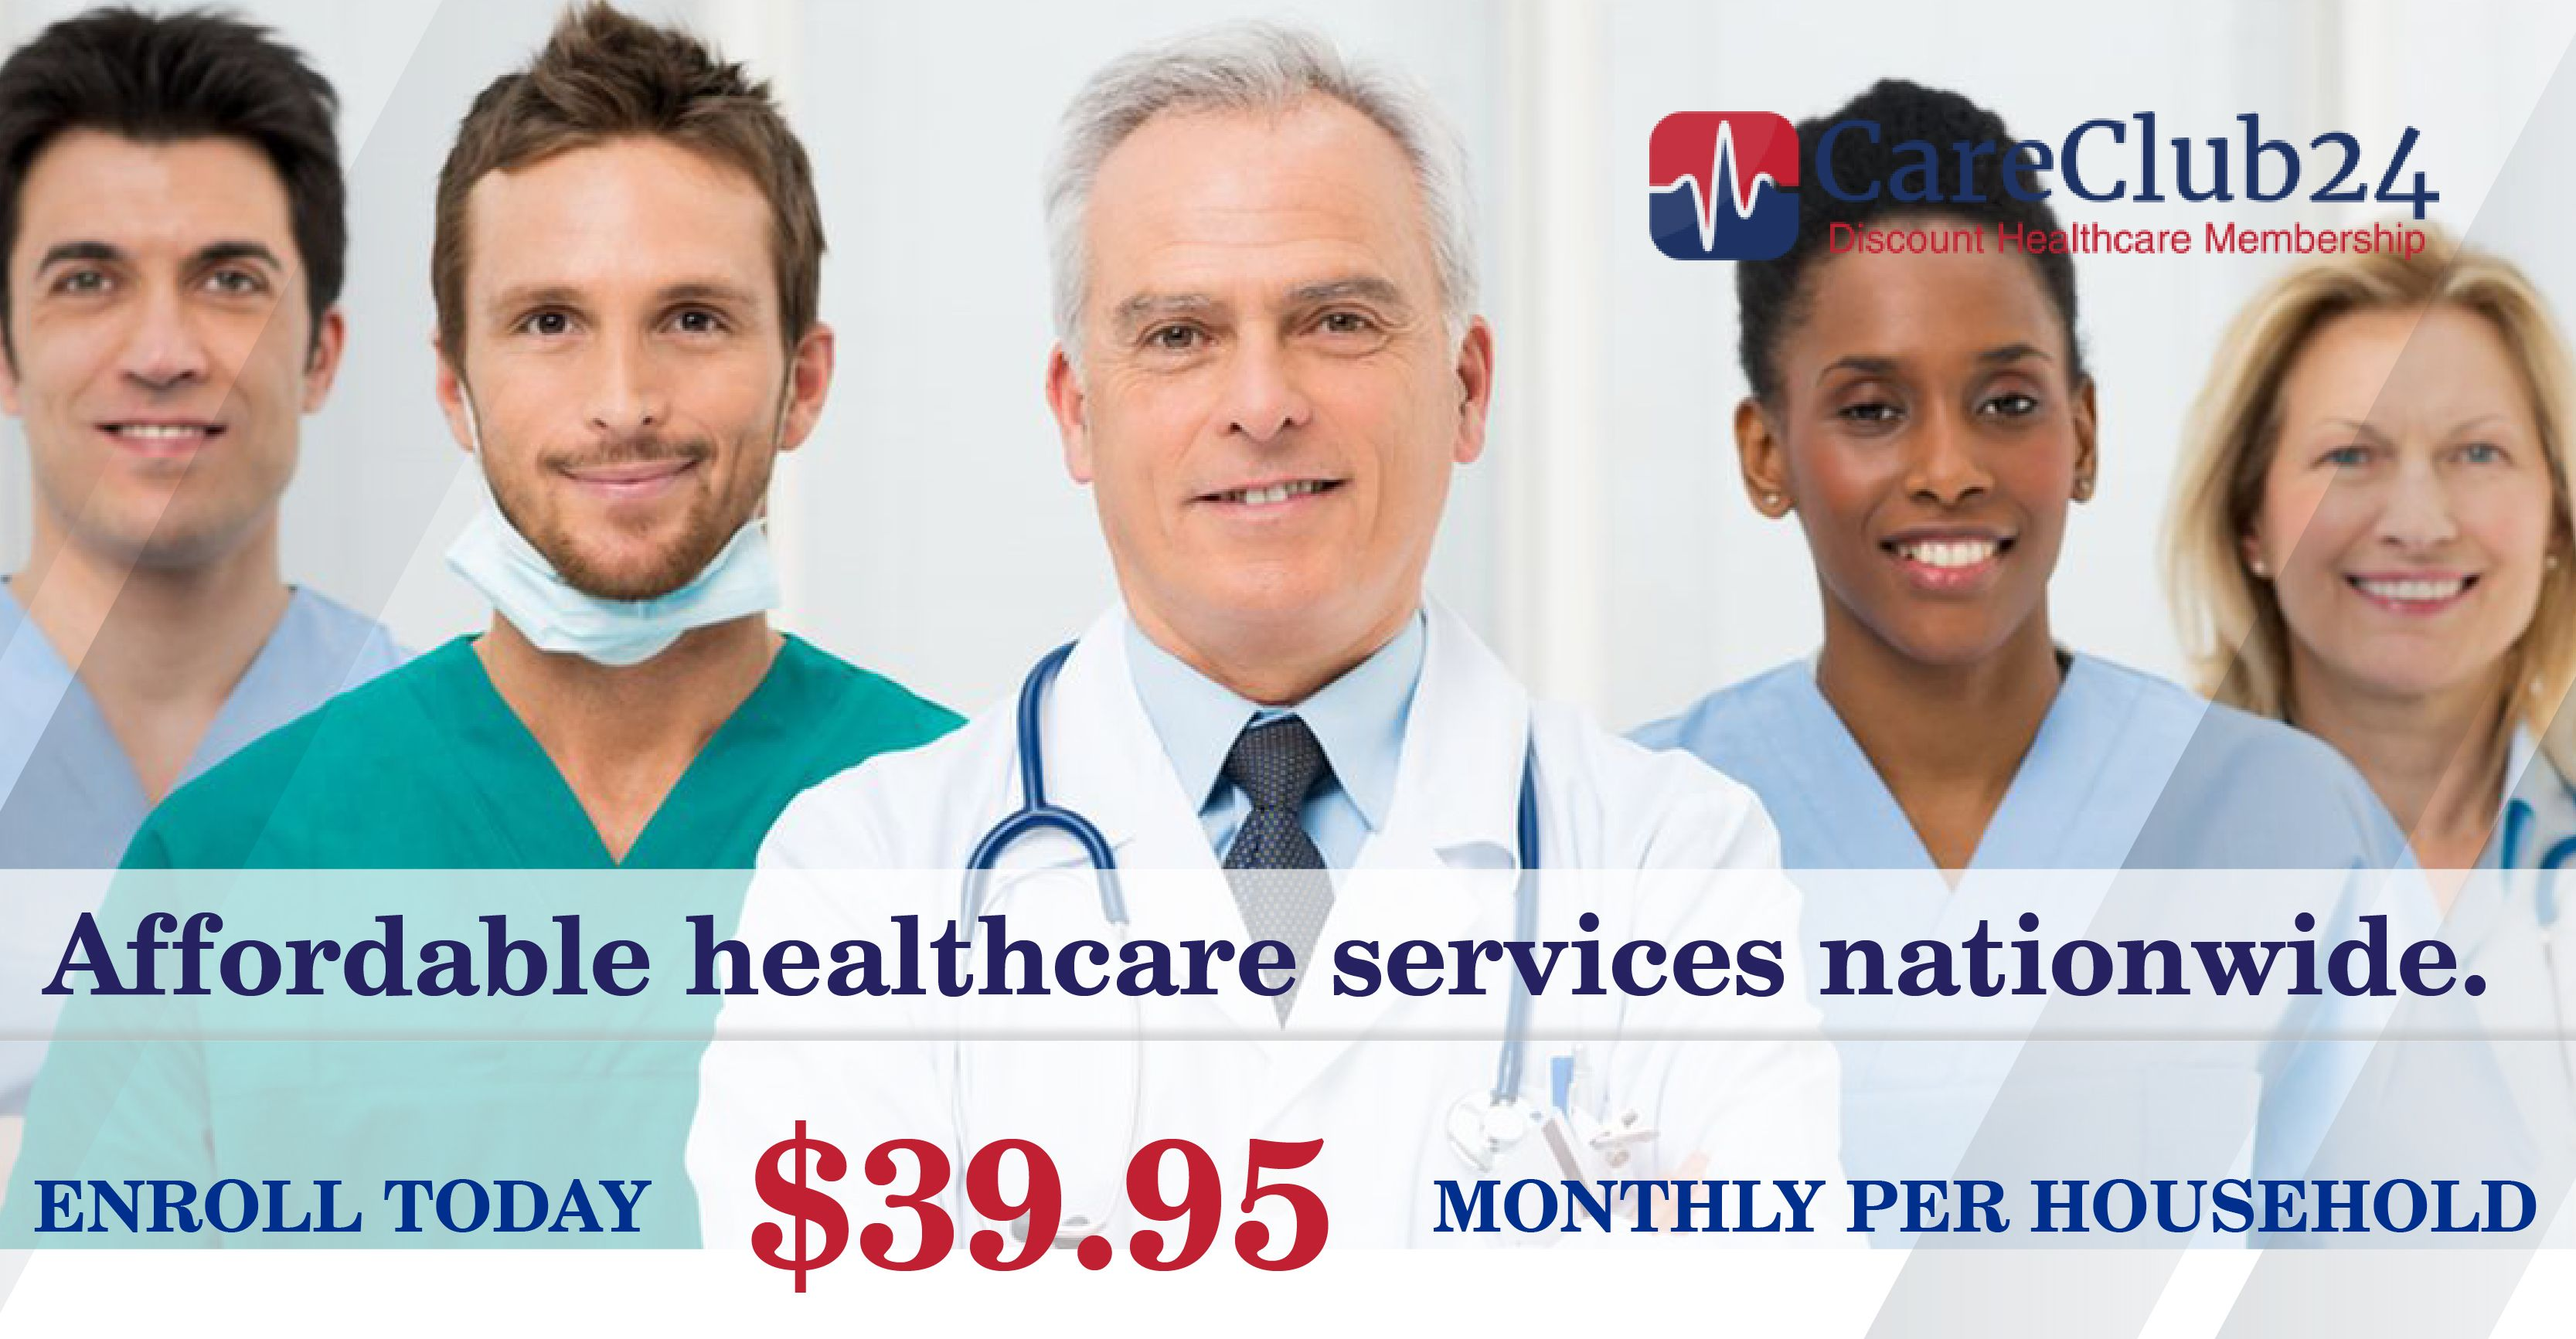 No Health Insurance Or Deductible Way Too High Careclub24